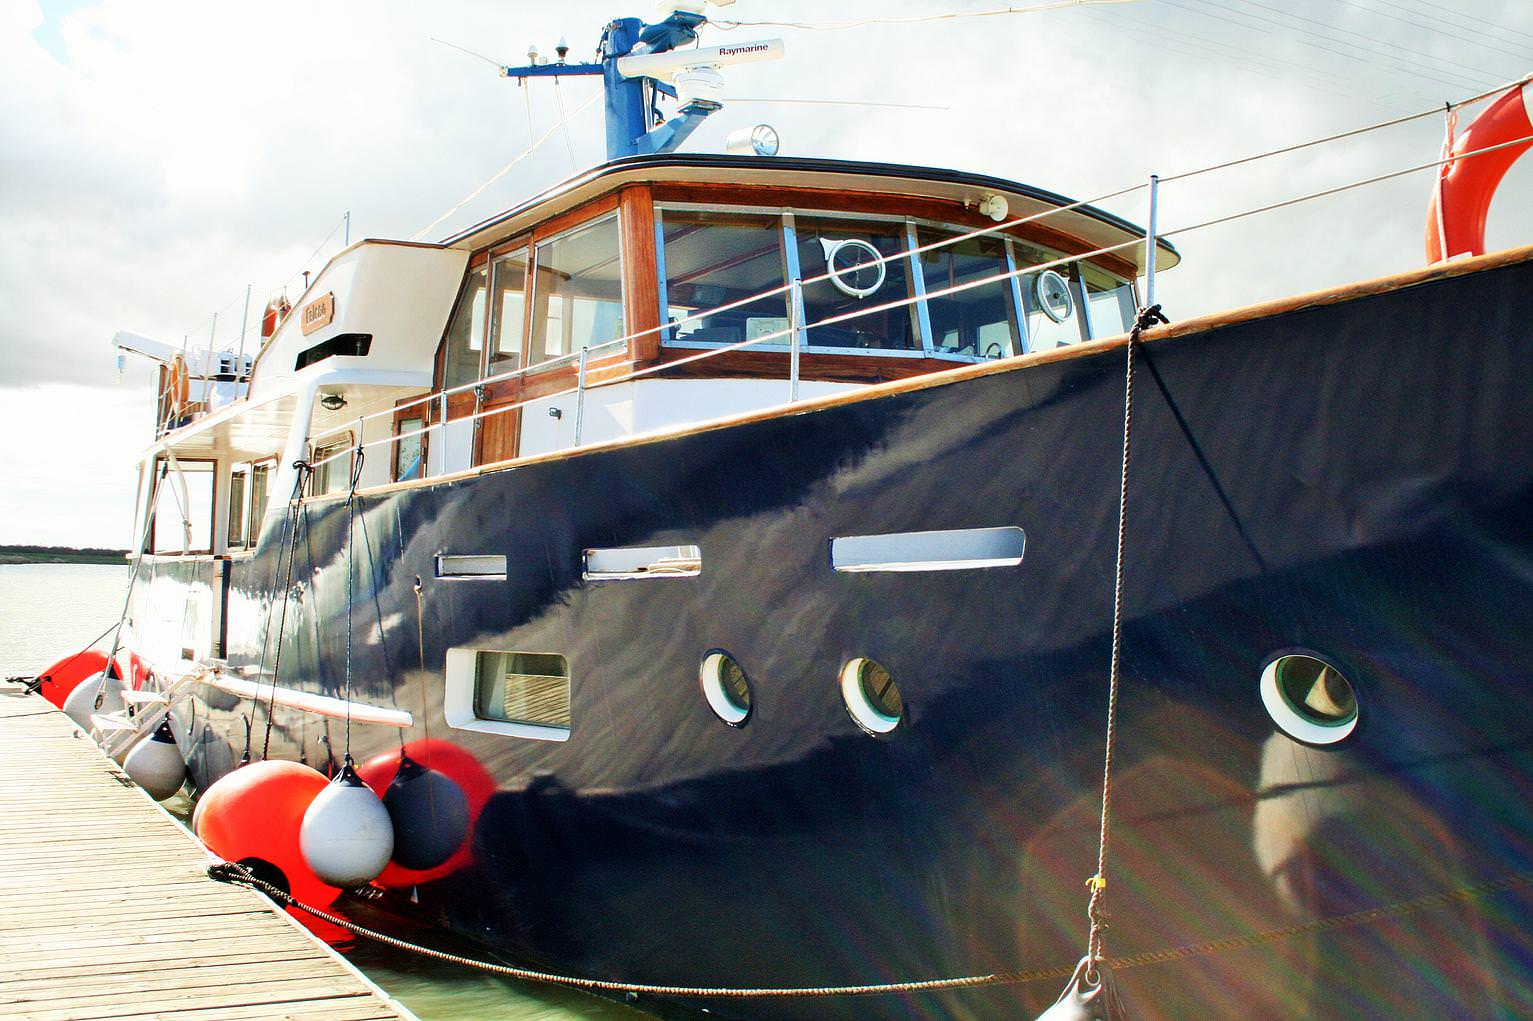 Falcao Uno – a gentleman's yacht with a long history